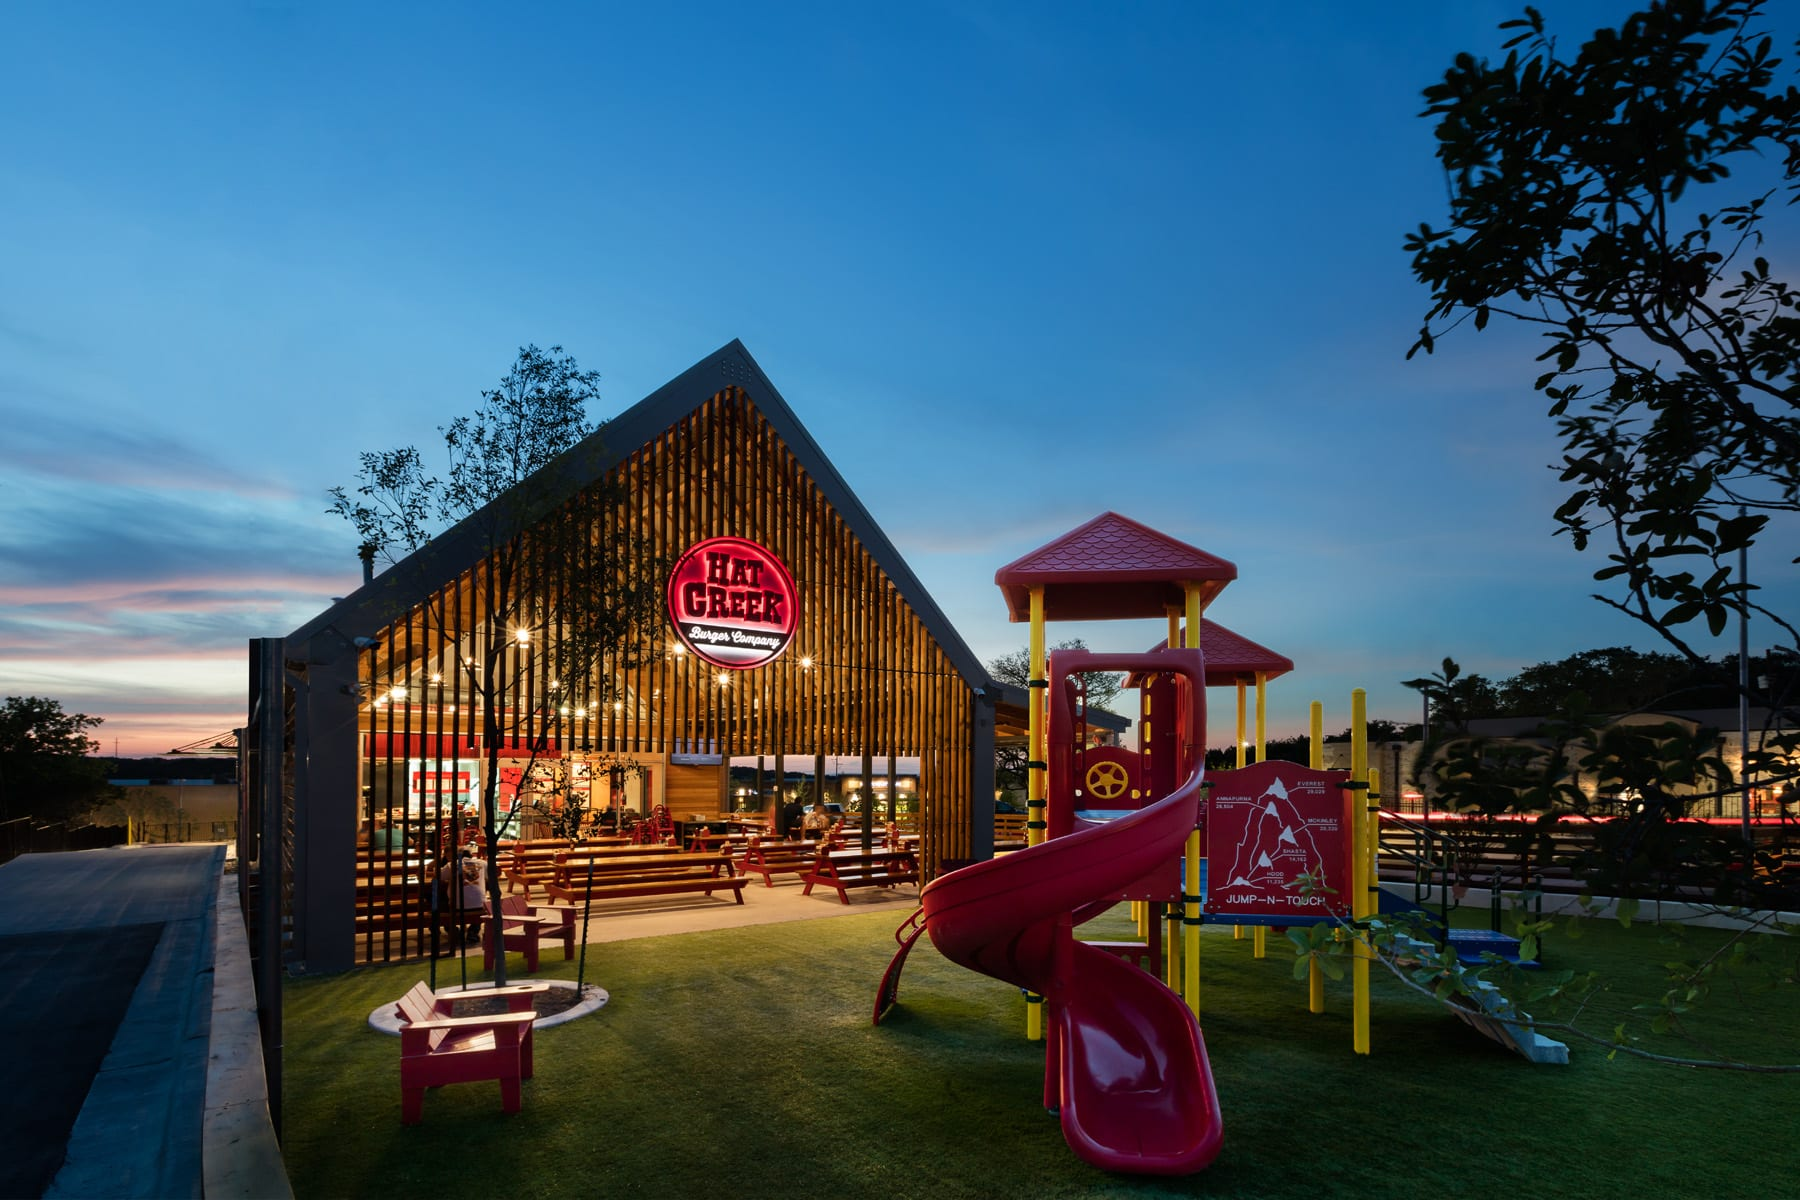 Hat Creek Burger Company S Eatandplay Giveaway Do512 Family